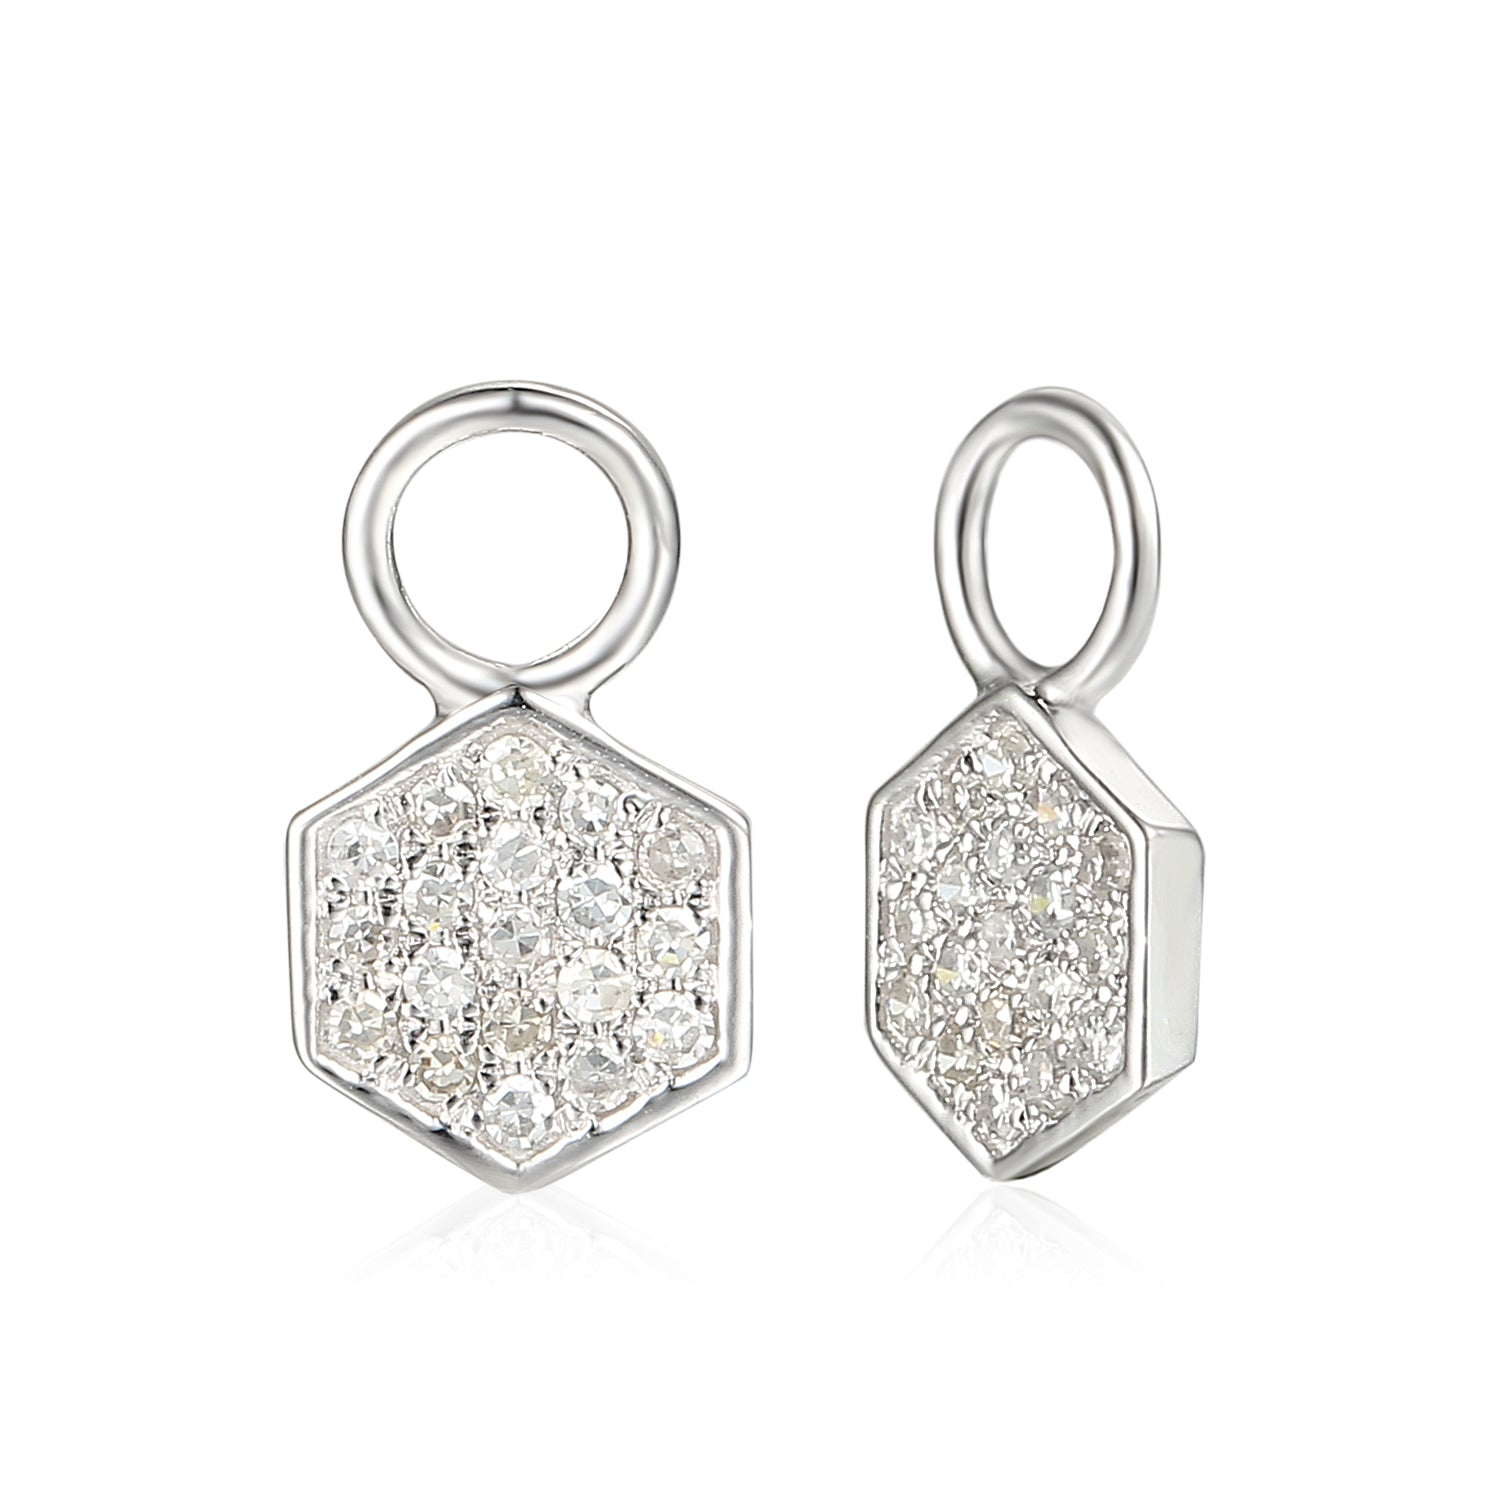 5a579a2be ... 18ct White Gold Diamond Sleeper Hoop With Hanging Interchangeable  Octagon Charm ...